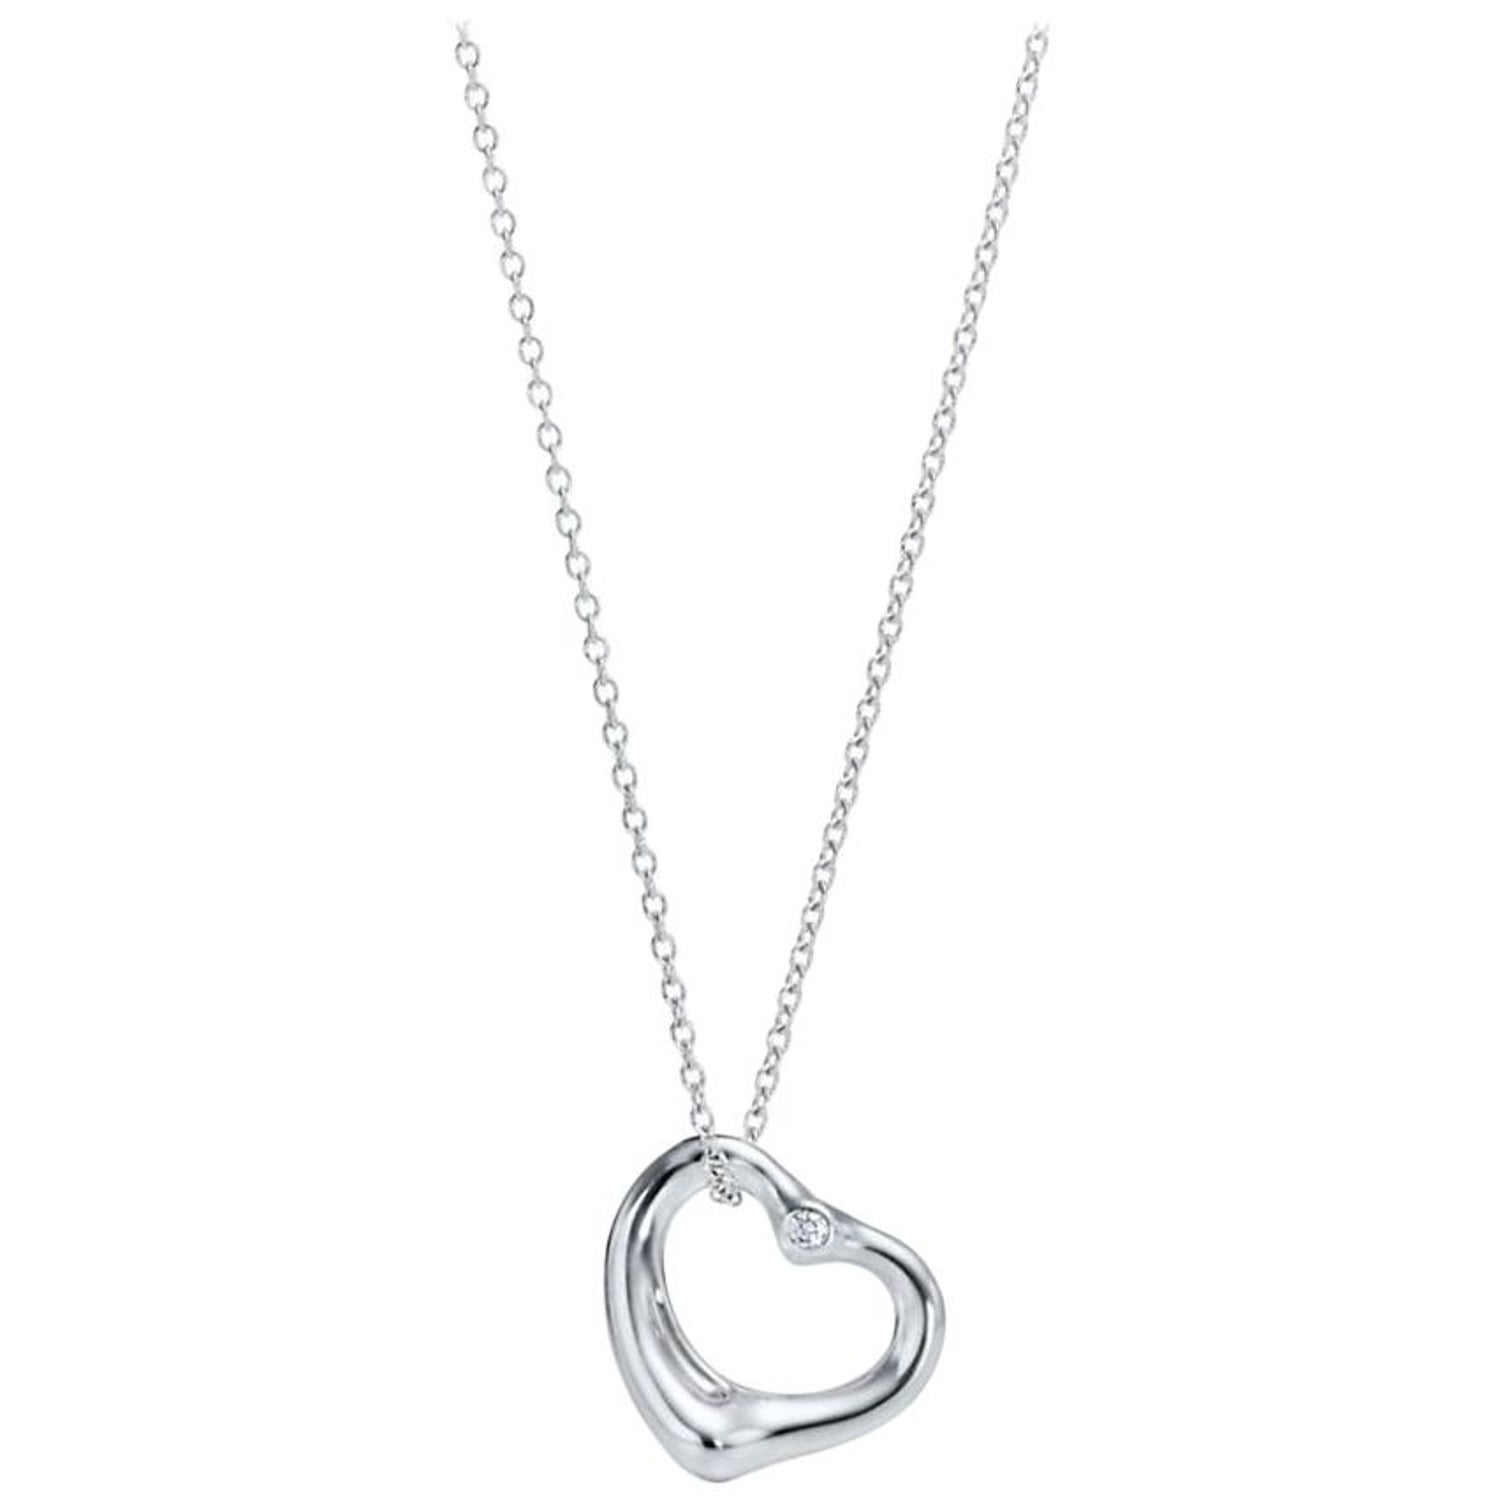 d7555dd7a2004 Elsa Peretti Open Heart Pendant in Silver with Diamonds Tiffany and Co. at  1stdibs